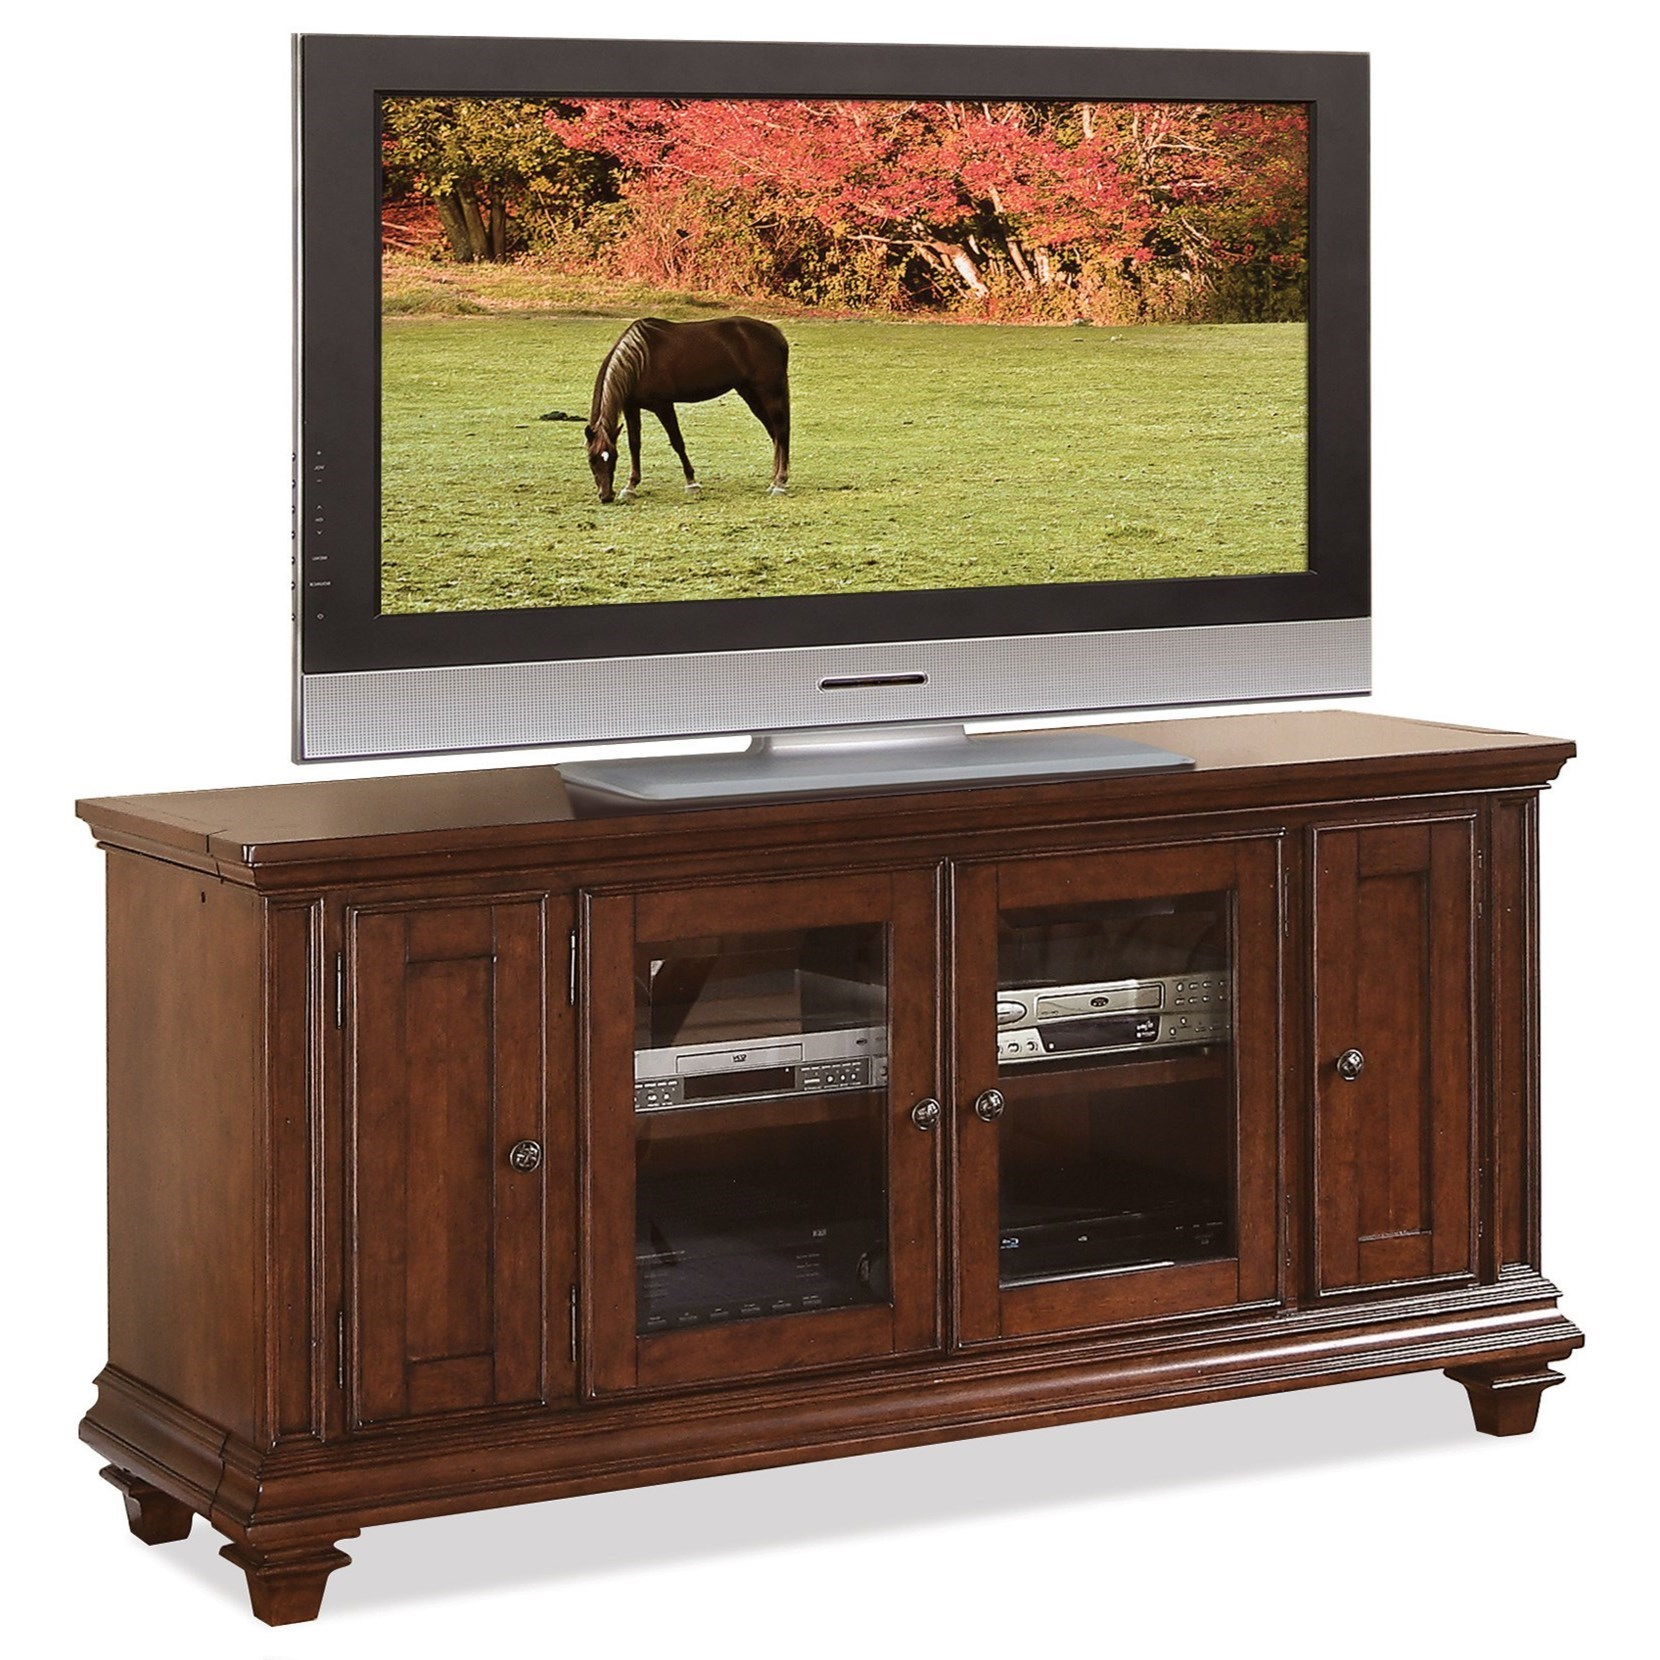 Riverside Furniture Windward Bay 63 Inch TV Console : Hudsonu0026#39;s Furniture : TV Stands Tampa, St ...